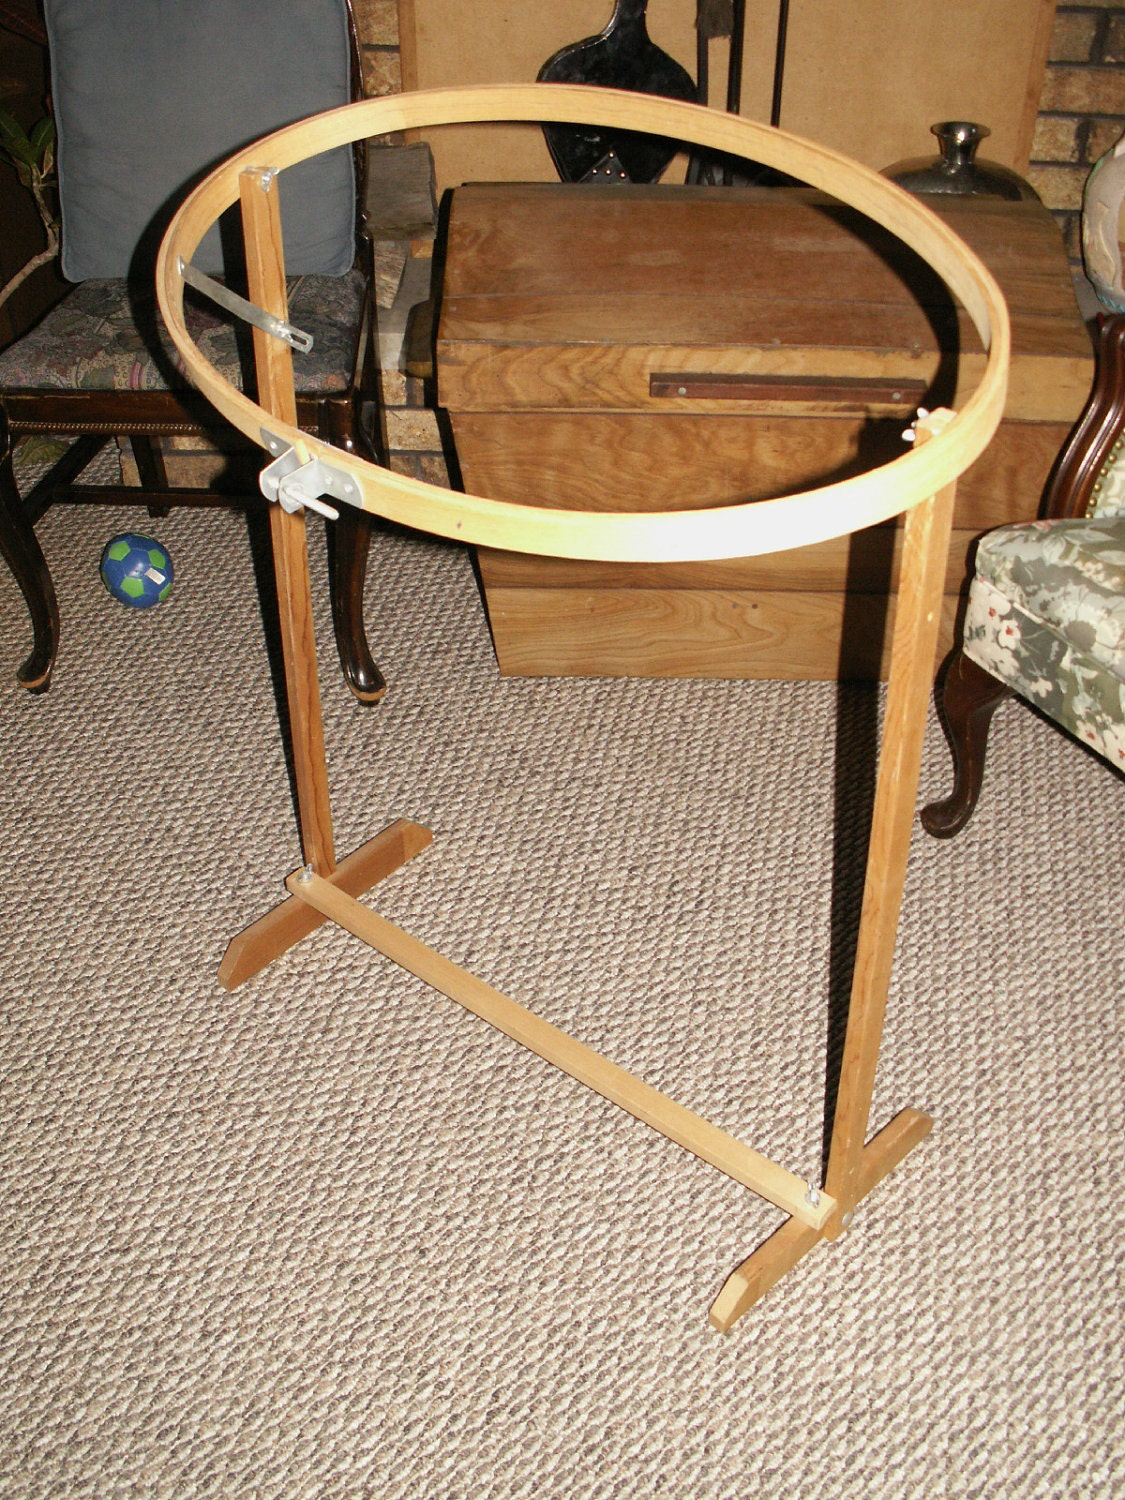 Wood quilting embroidery stand with oval hoop